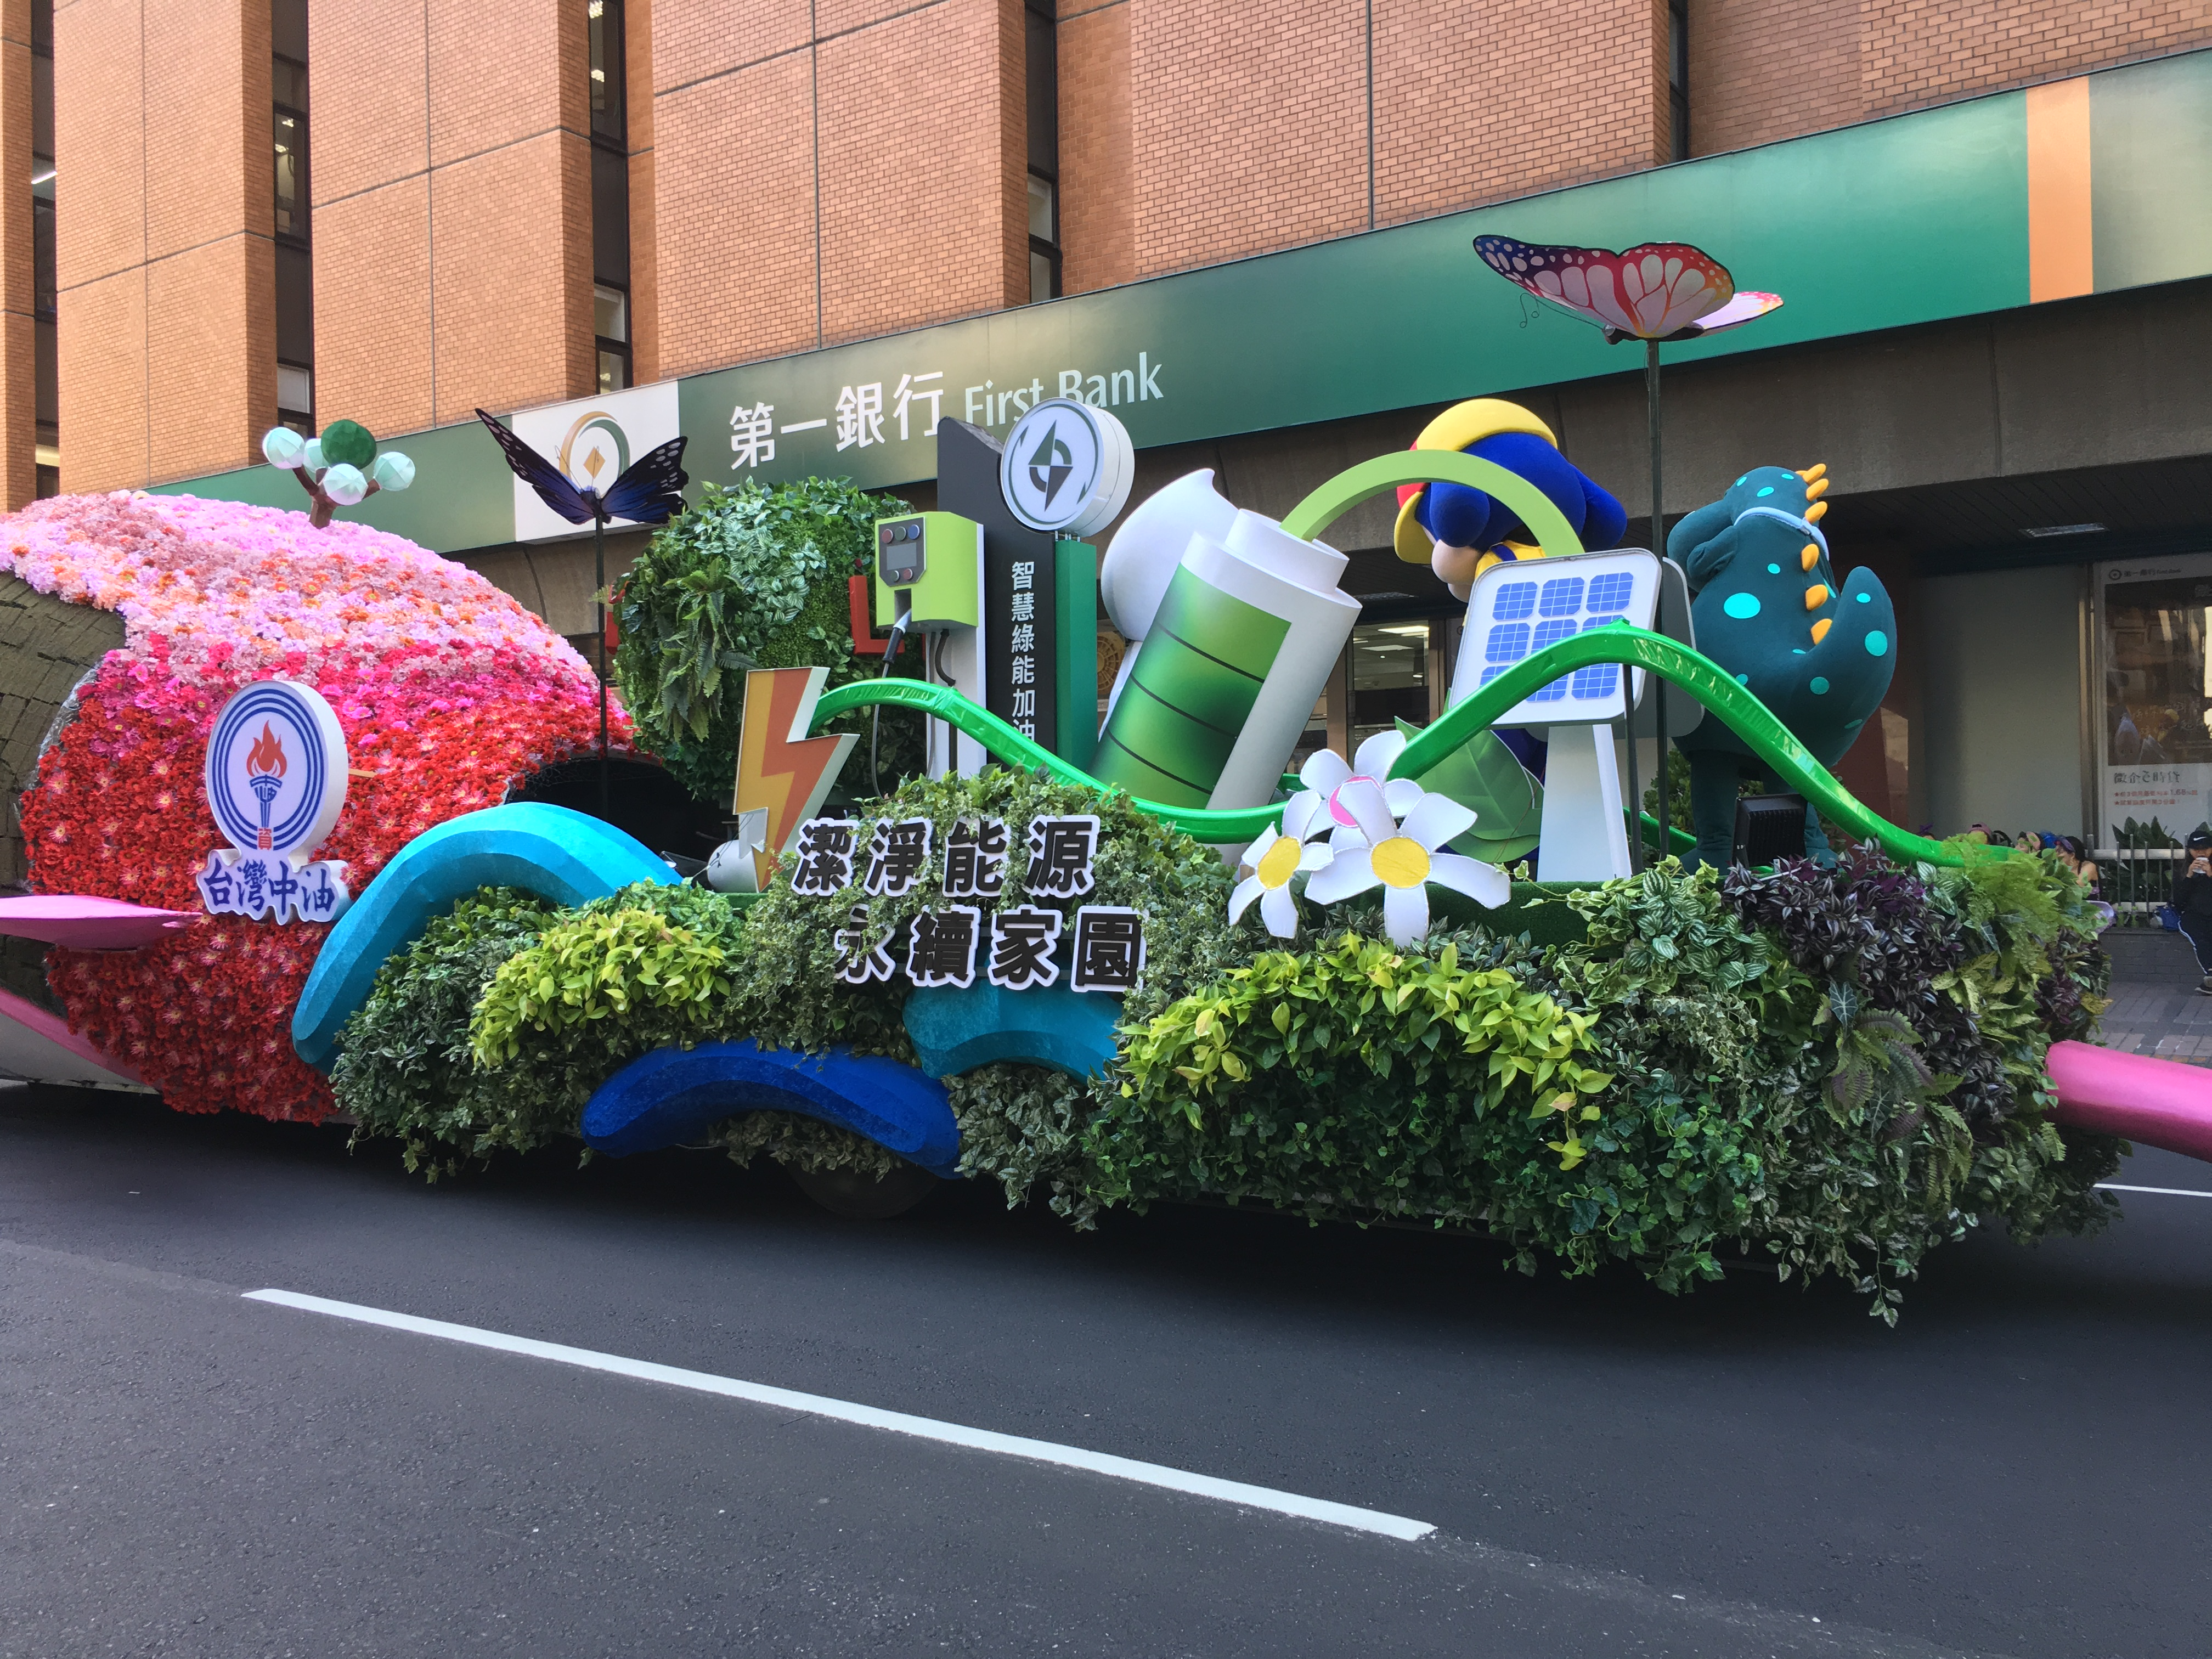 CPC's National Day float featured a whale, symbolizing Taiwan's green energy industry heading for global excellence